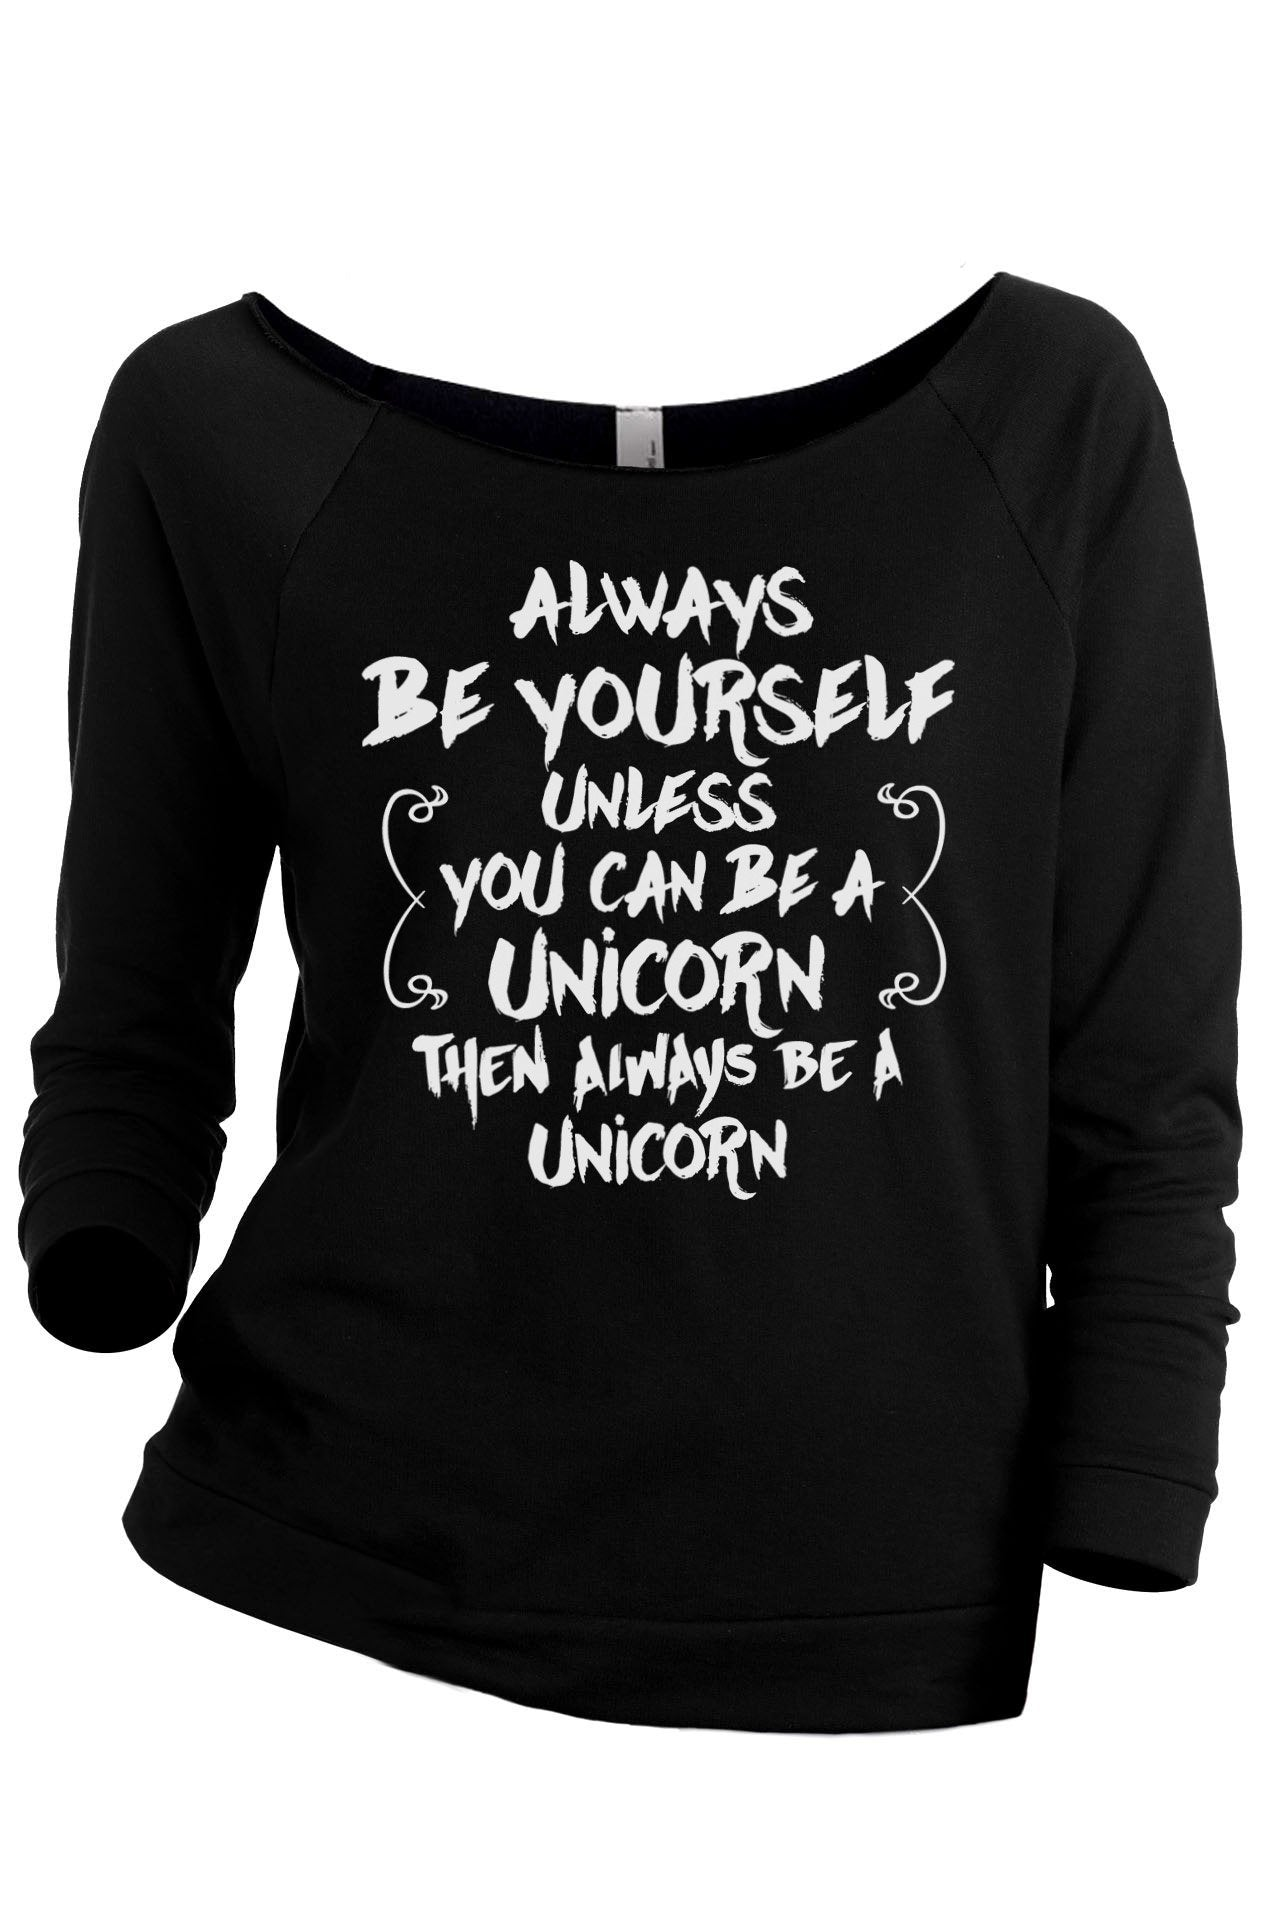 Always Be Yourself, Unicorn Women's Graphic Printed Lightweight Slouchy 3/4 Sleeves Sweatshirt Sport Grey